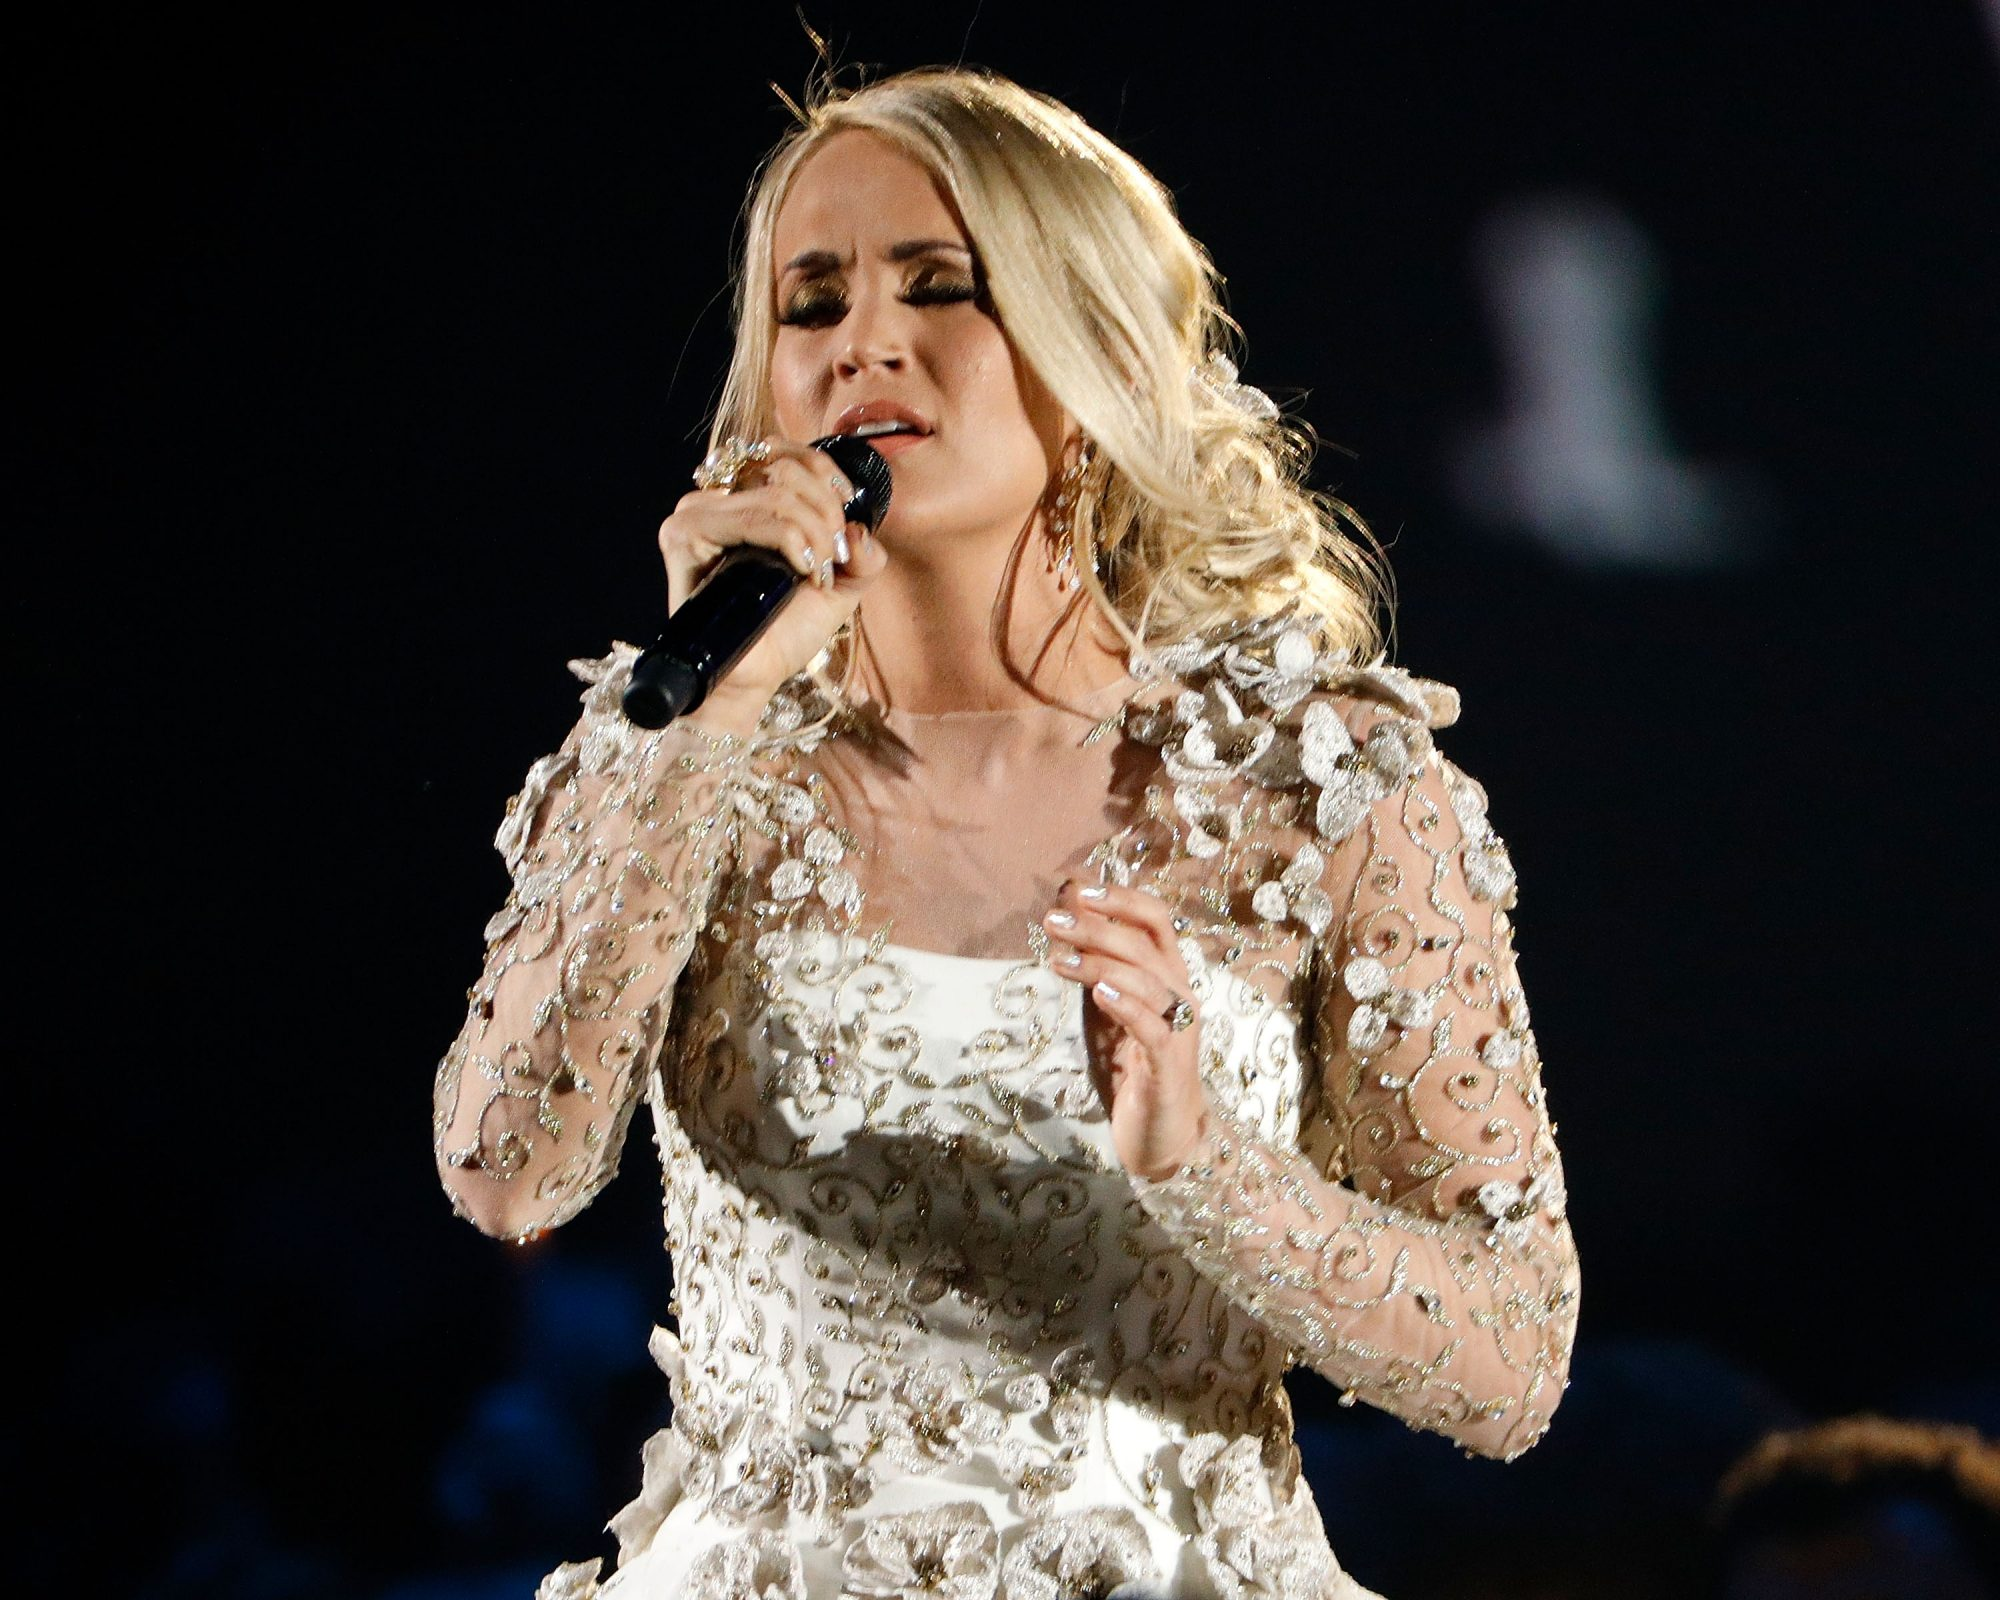 Photo of Carrie Underwood Performing at the 51st Annual CMA Awards